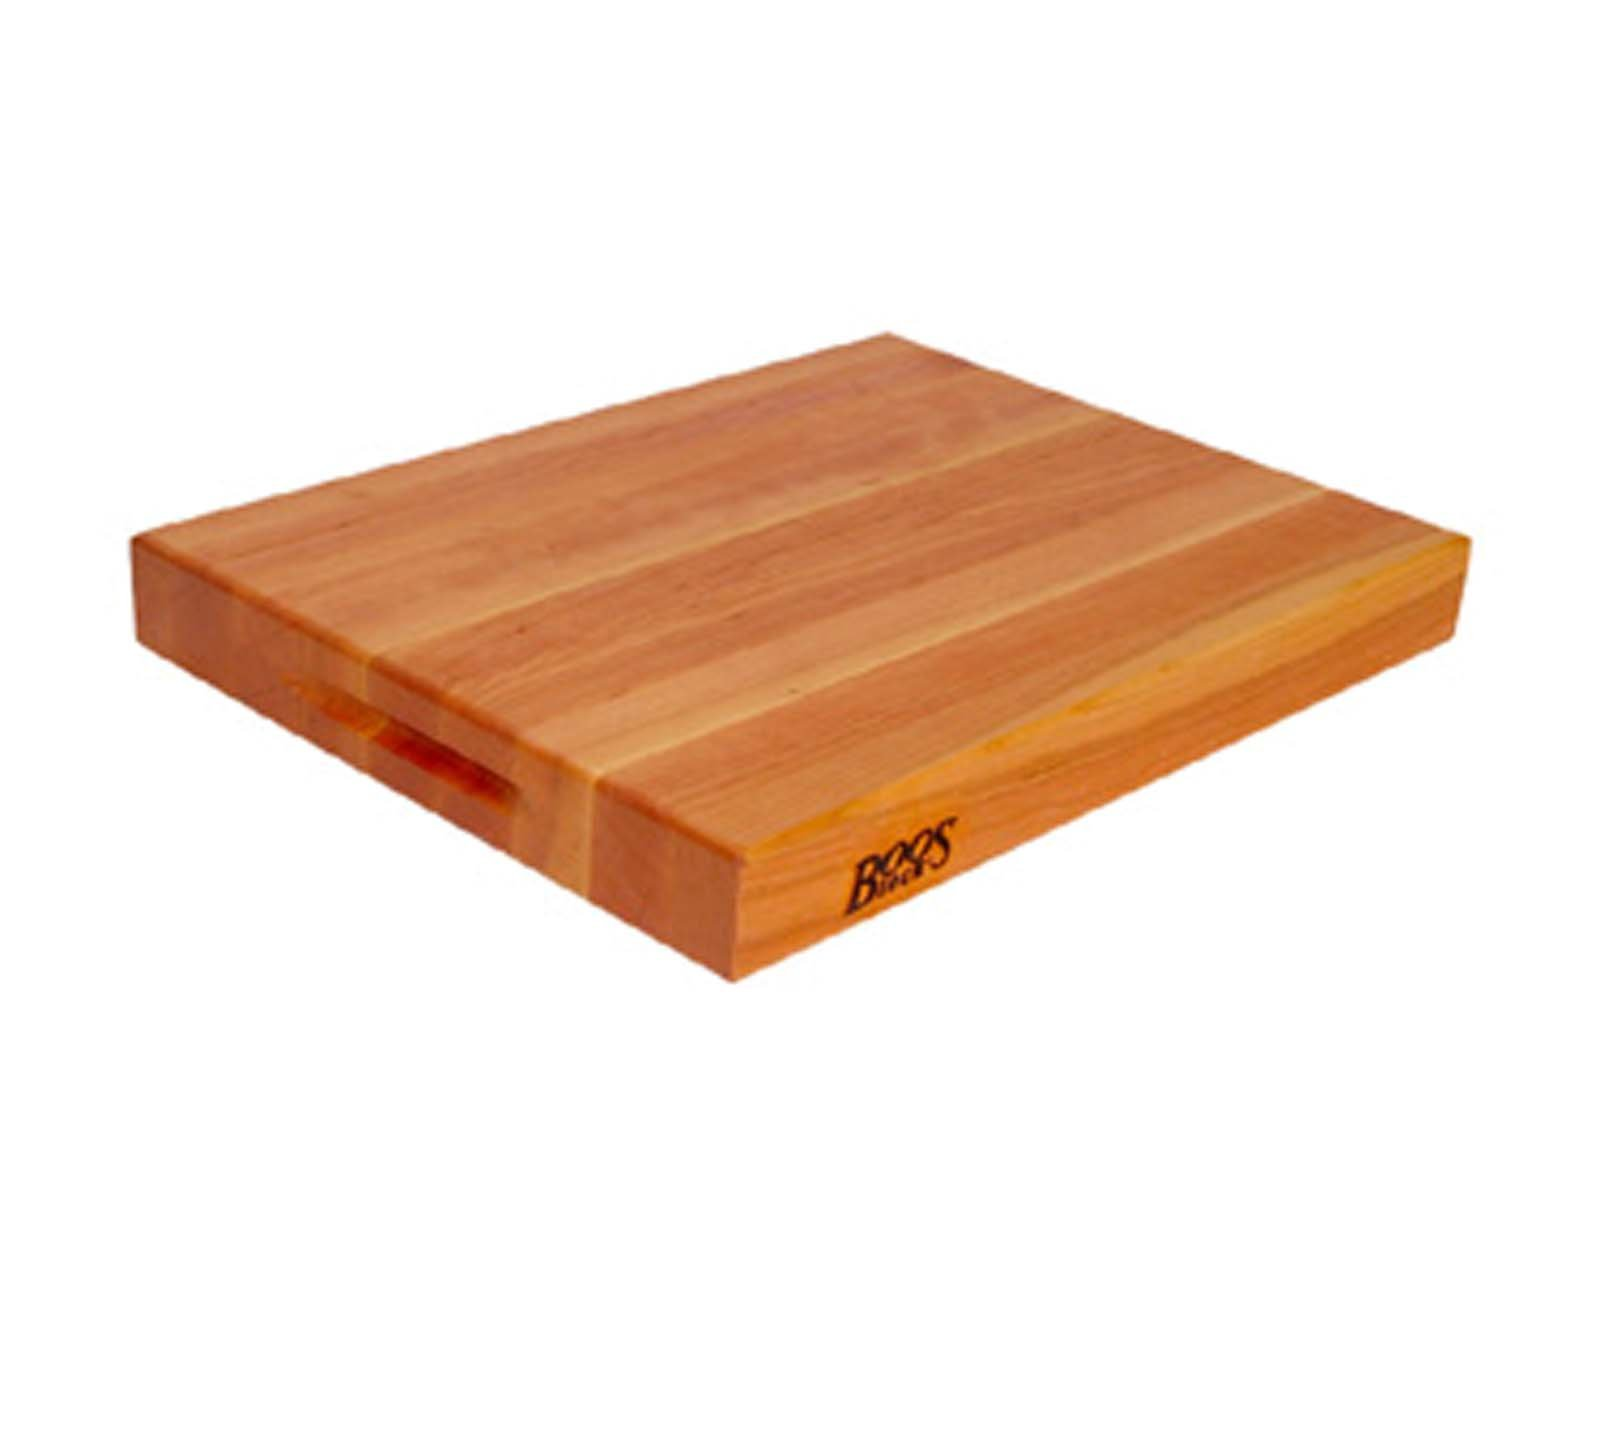 John Boos RA-Cutting Board, 24 Inches x 18 Inches x 2.25 Inches - Cherry